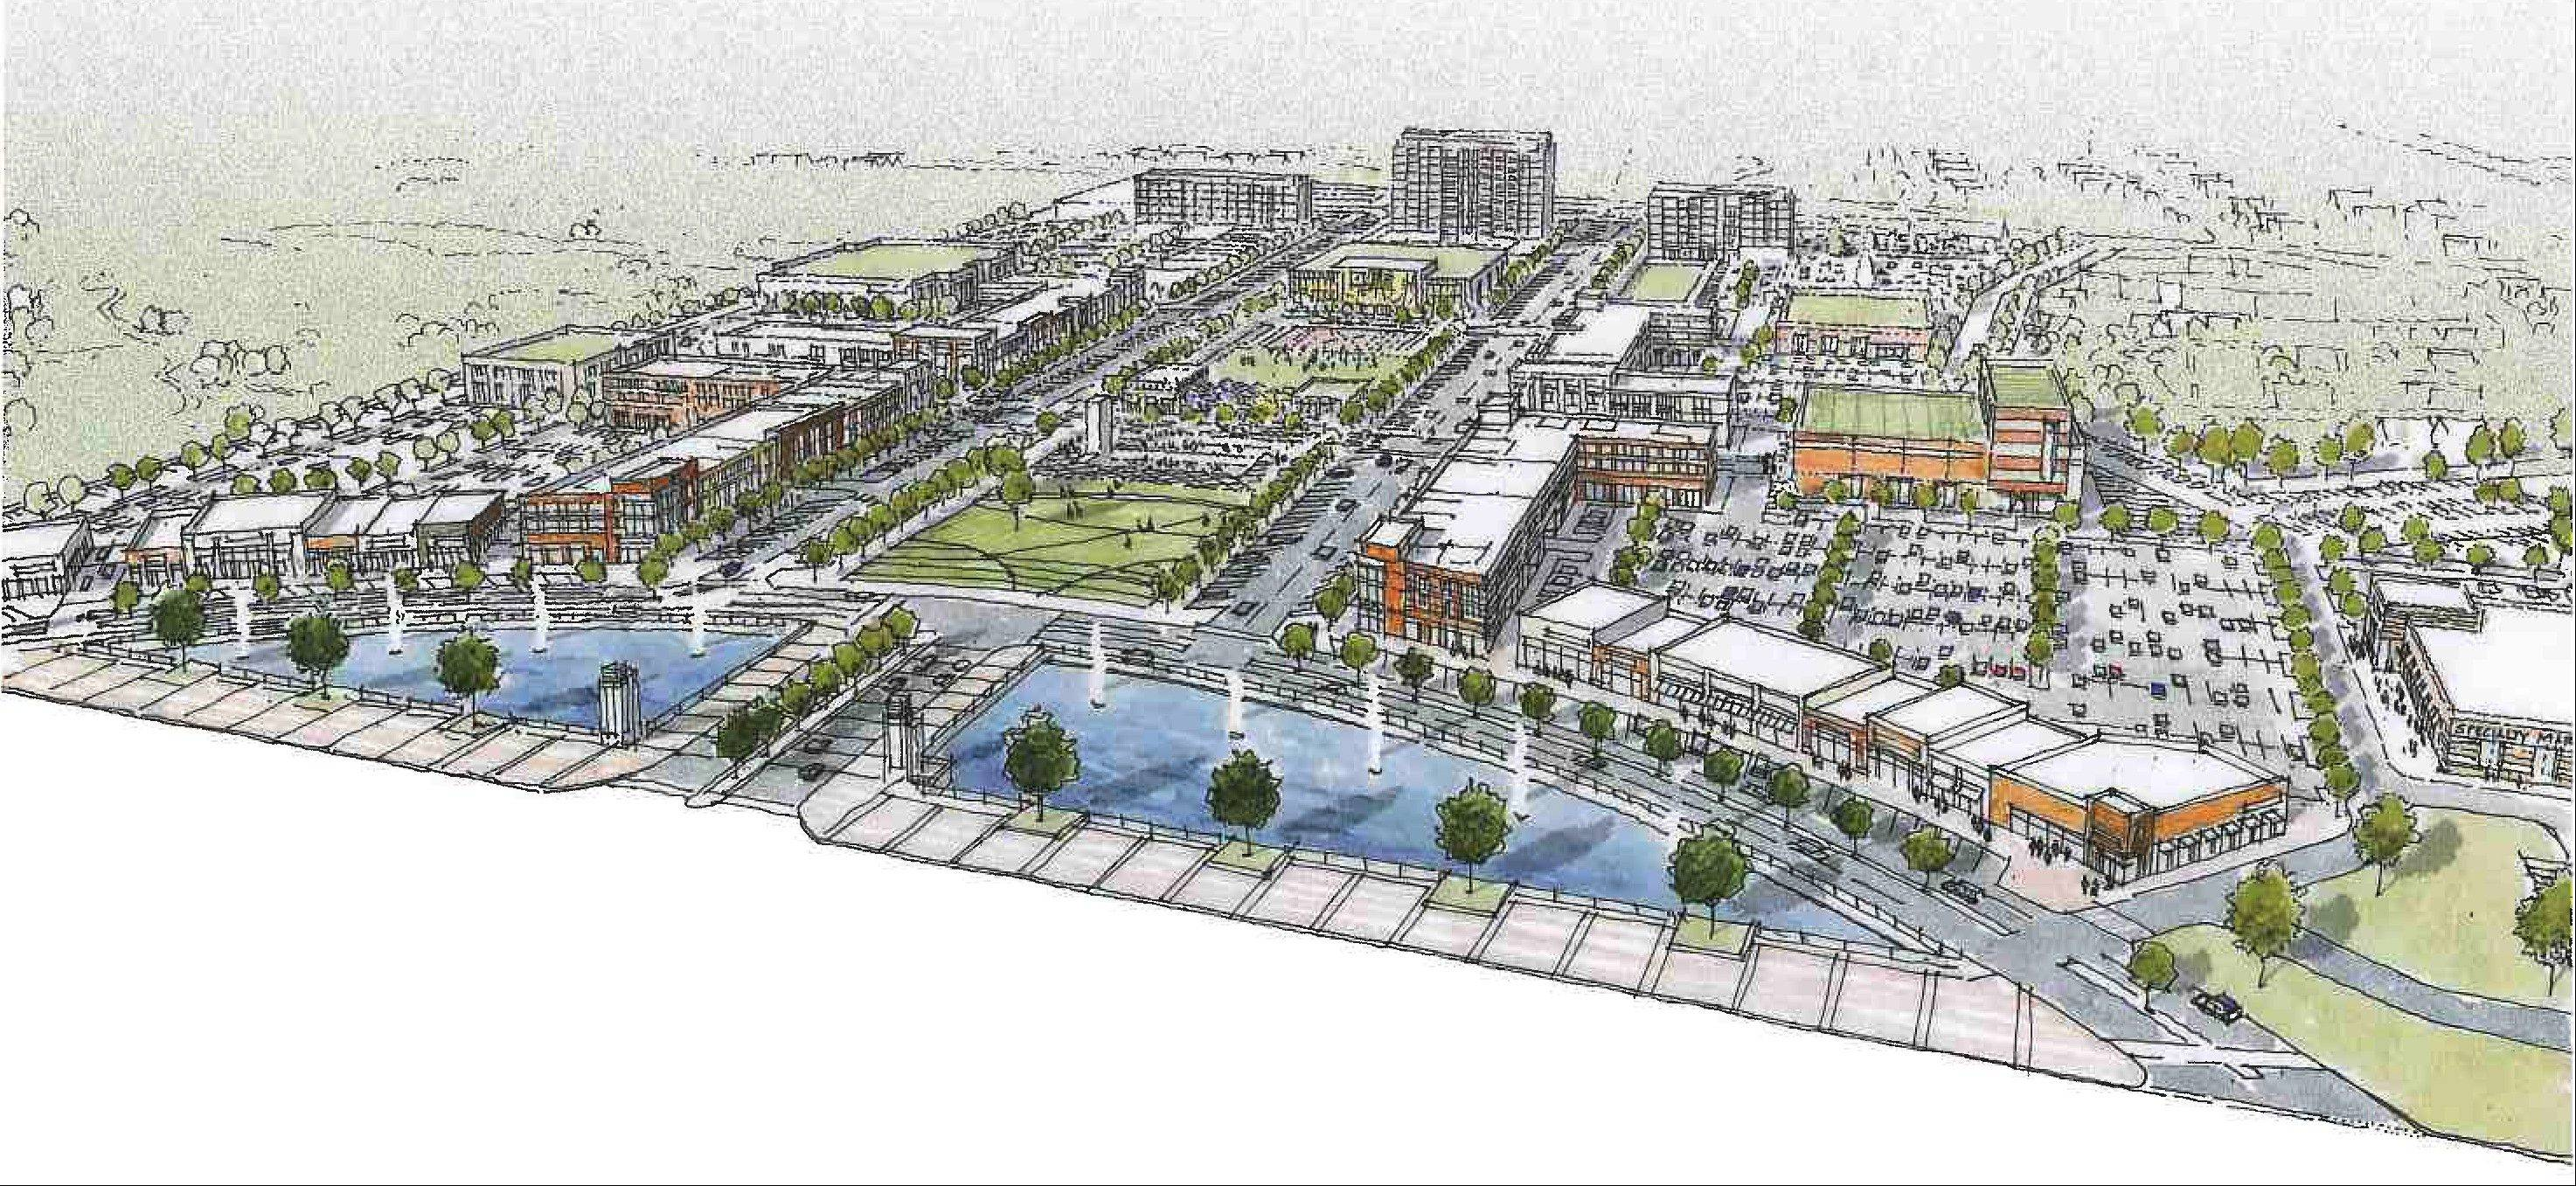 A sketch of what the proposed development in Buffalo Grove might look like.